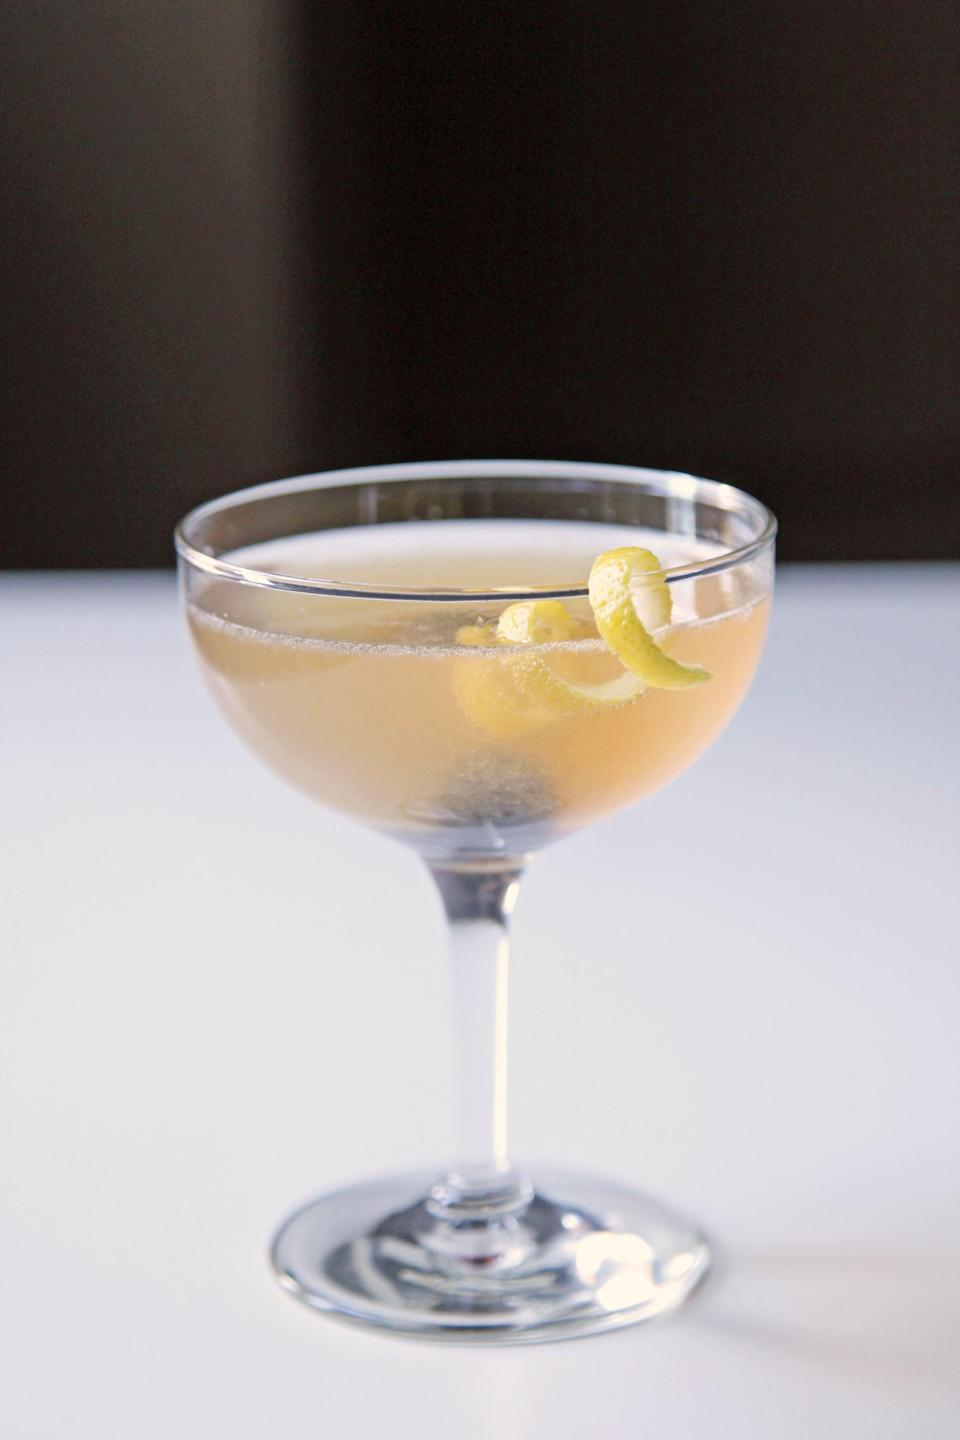 """<p>Indiana is all about French 75s, and we're here for it! This honey-sweet twist on the classic cocktail is doubled up on ingredients (save for the sparkling wine and garnishes), making for a slightly less effervescent but flavor-packed spin on an old favorite.</p> <p><strong>Get the recipe</strong>: <a href=""""https://www.popsugar.com/food/French-75-Honey-26456279"""" class=""""link rapid-noclick-resp"""" rel=""""nofollow noopener"""" target=""""_blank"""" data-ylk=""""slk:honeyed French 75"""">honeyed French 75</a></p>"""